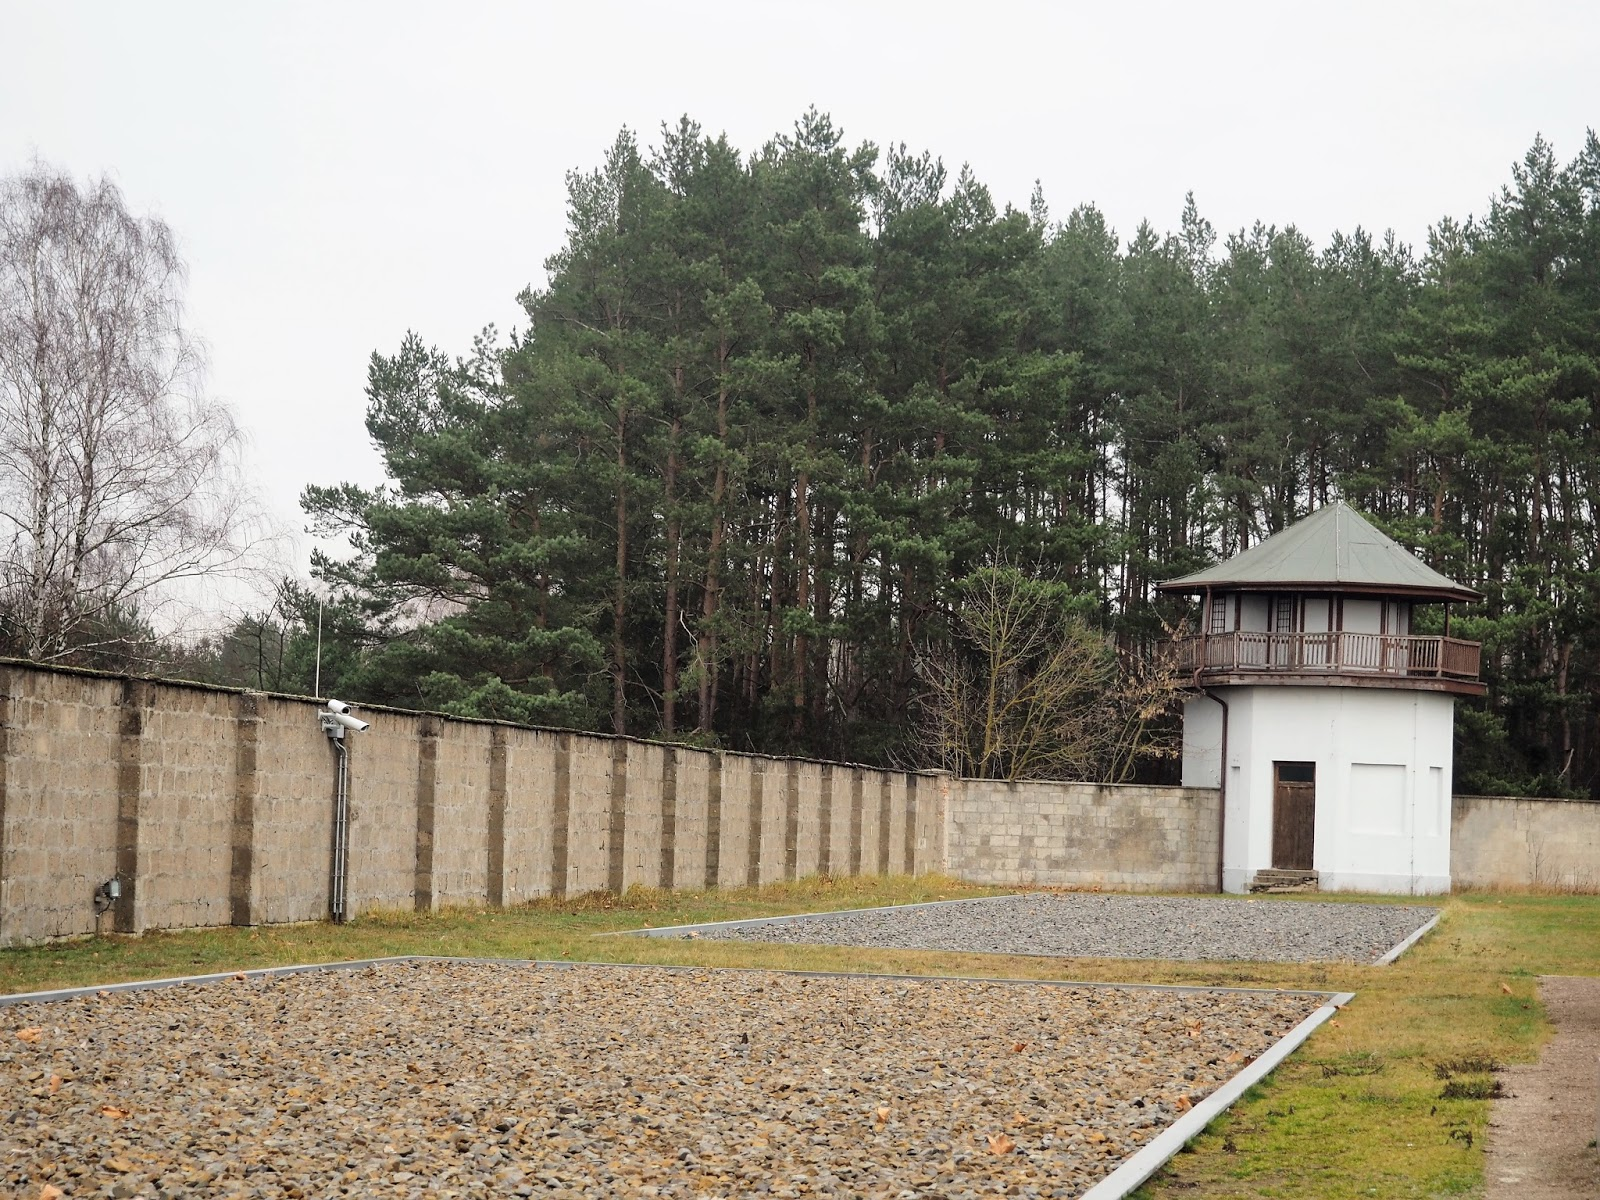 Sachsenhausen Concentration Camp wall and guard tower